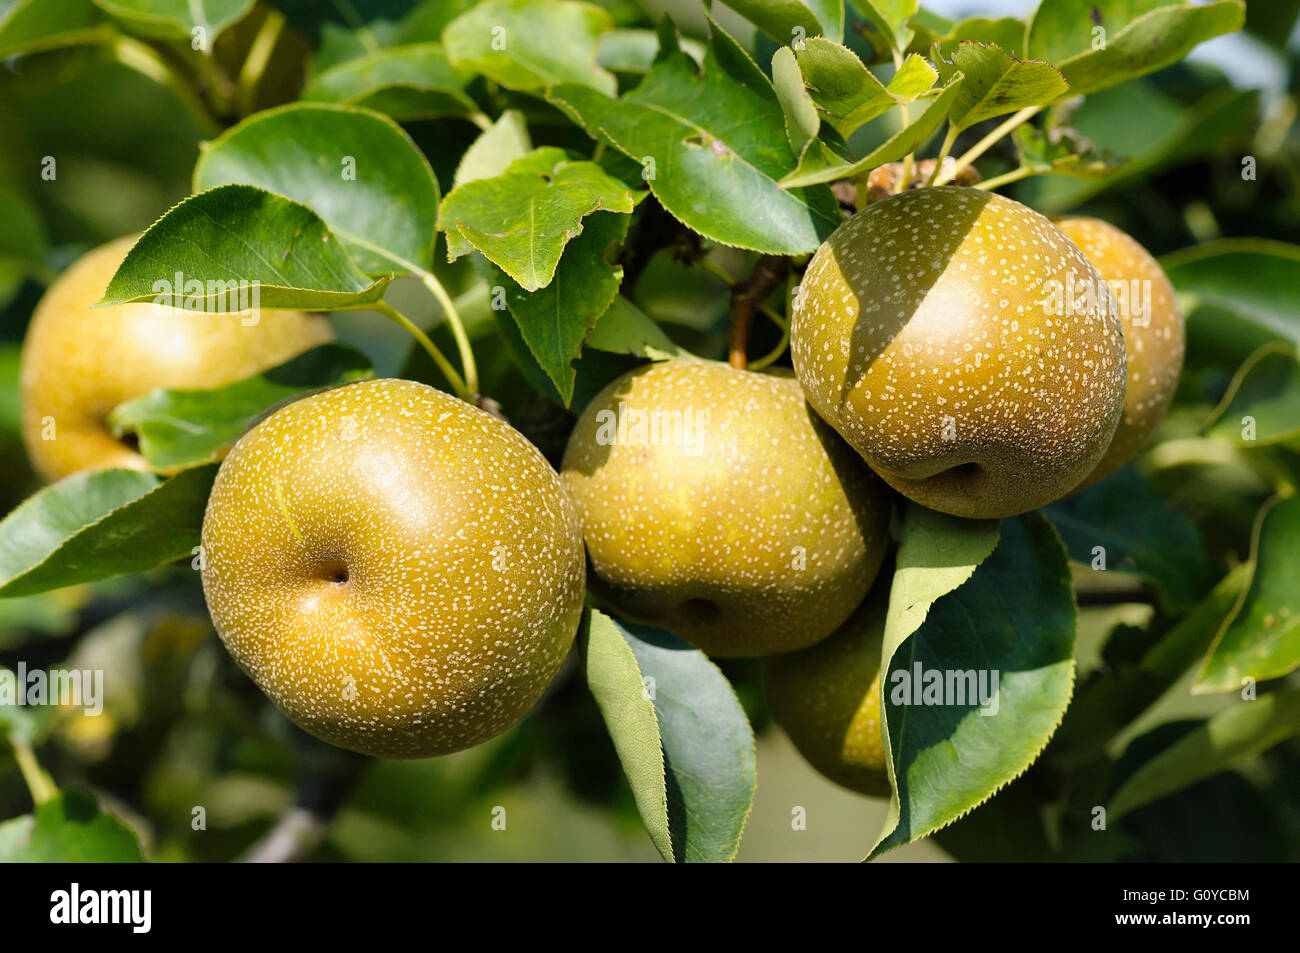 Shinko asian pear edible landscaping - Pear Nashi Pear Pyrus Pyrus Pyrifolia Apple Pear Asian Nashi Pear